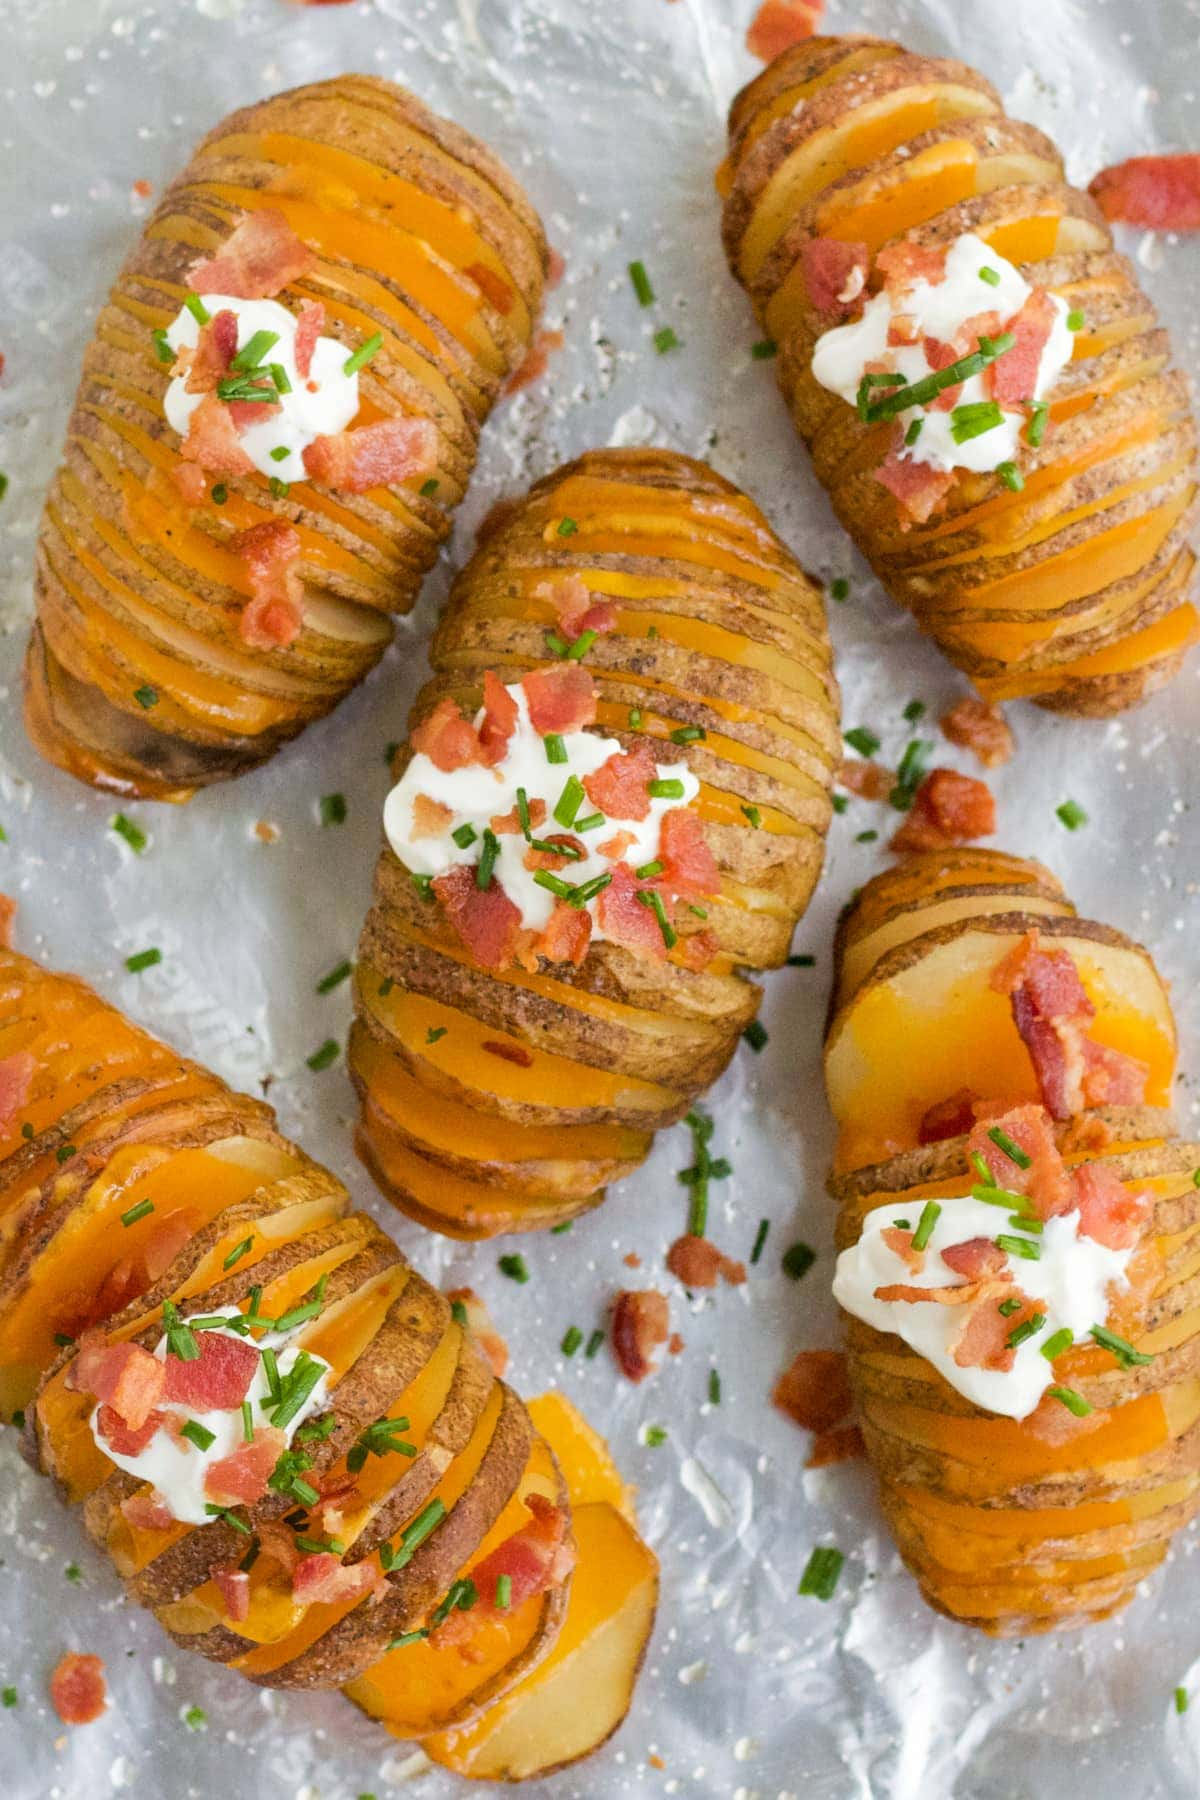 hasselback potatoes with sour cream, bacon and chives